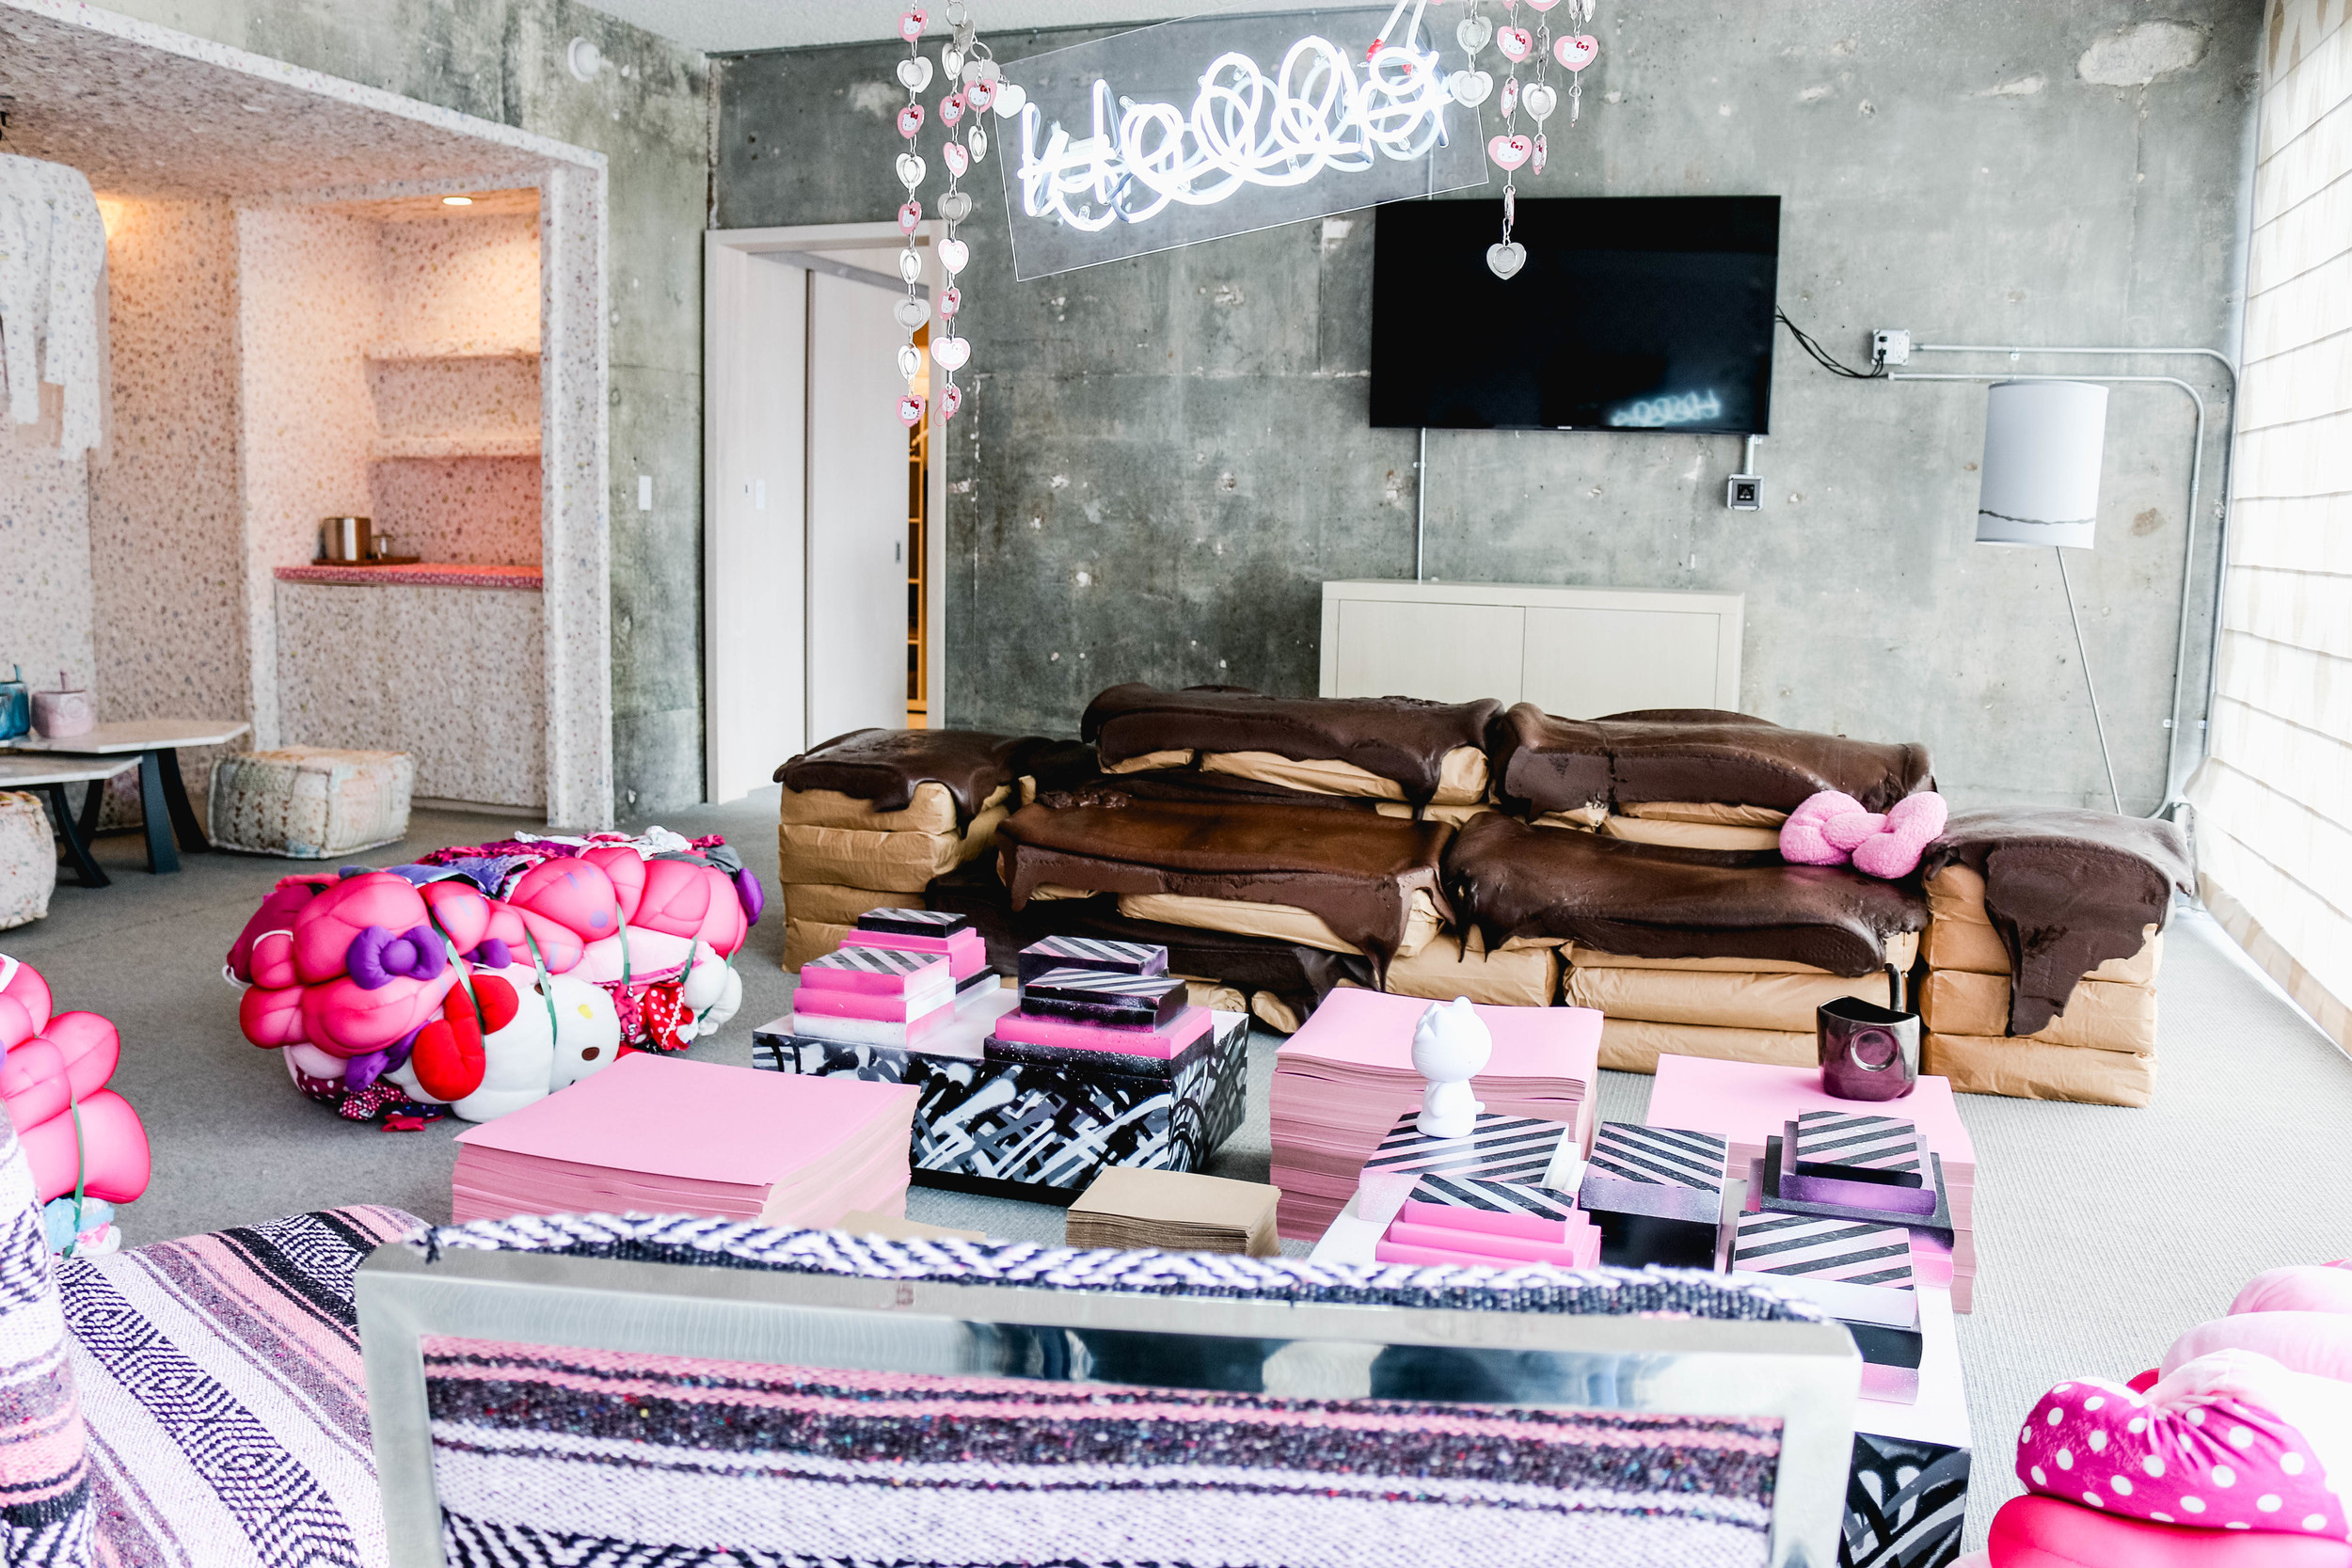 Hello Kitty at The LINE Hotel  2014 on ourcitylights-3.jpg